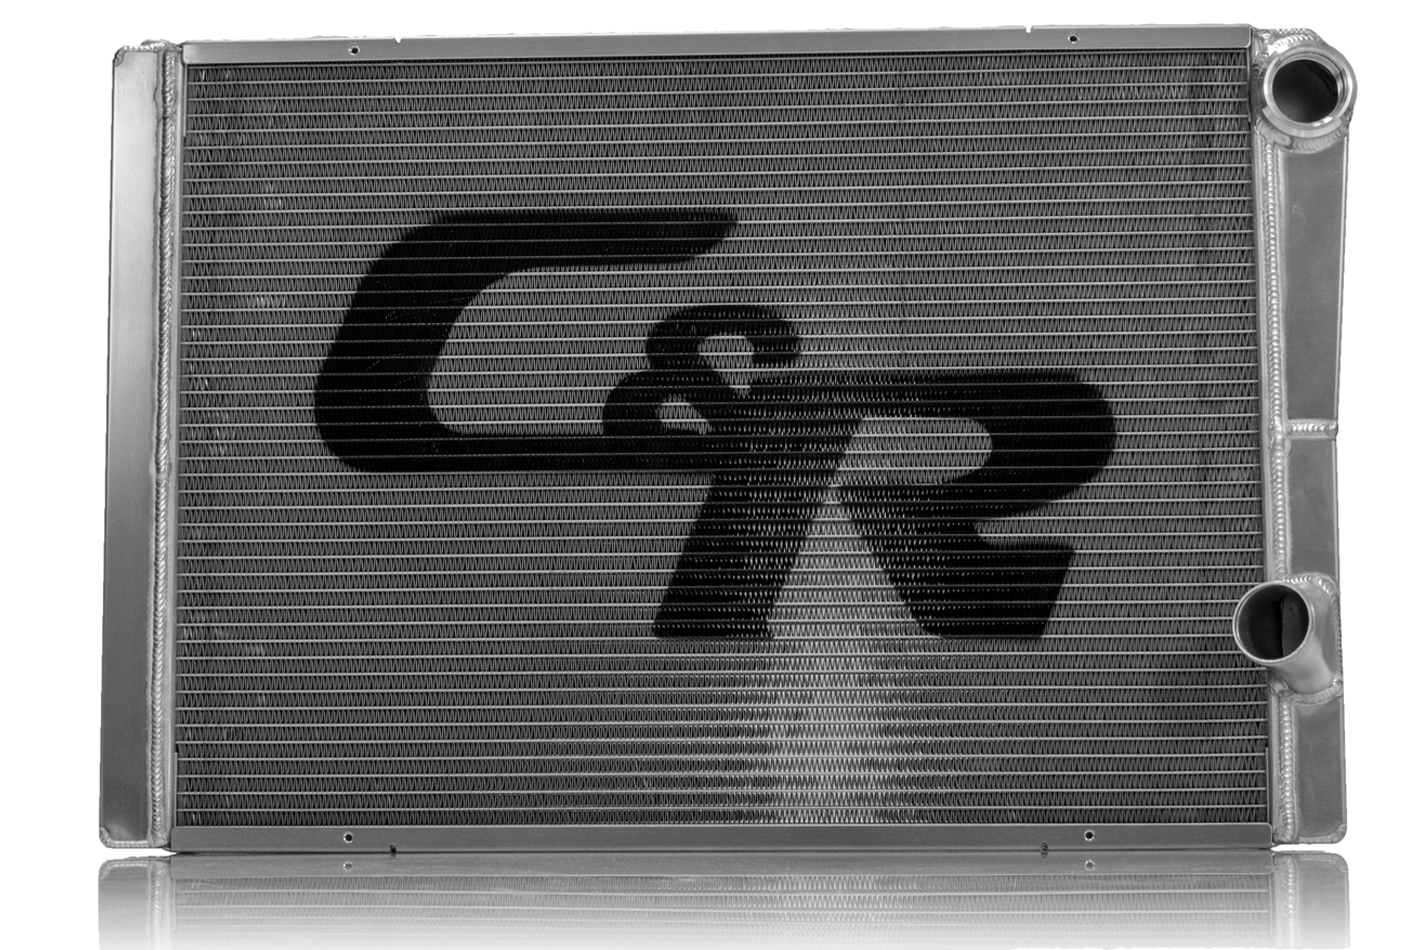 C & R Racing Radiators 926-15288 Radiator, Crossflow, 27-1/2 in W x 15 in H x 2.56 in D, Passenger Side Inlet, Passenger Side Outlet, Aluminum, Natural, Each